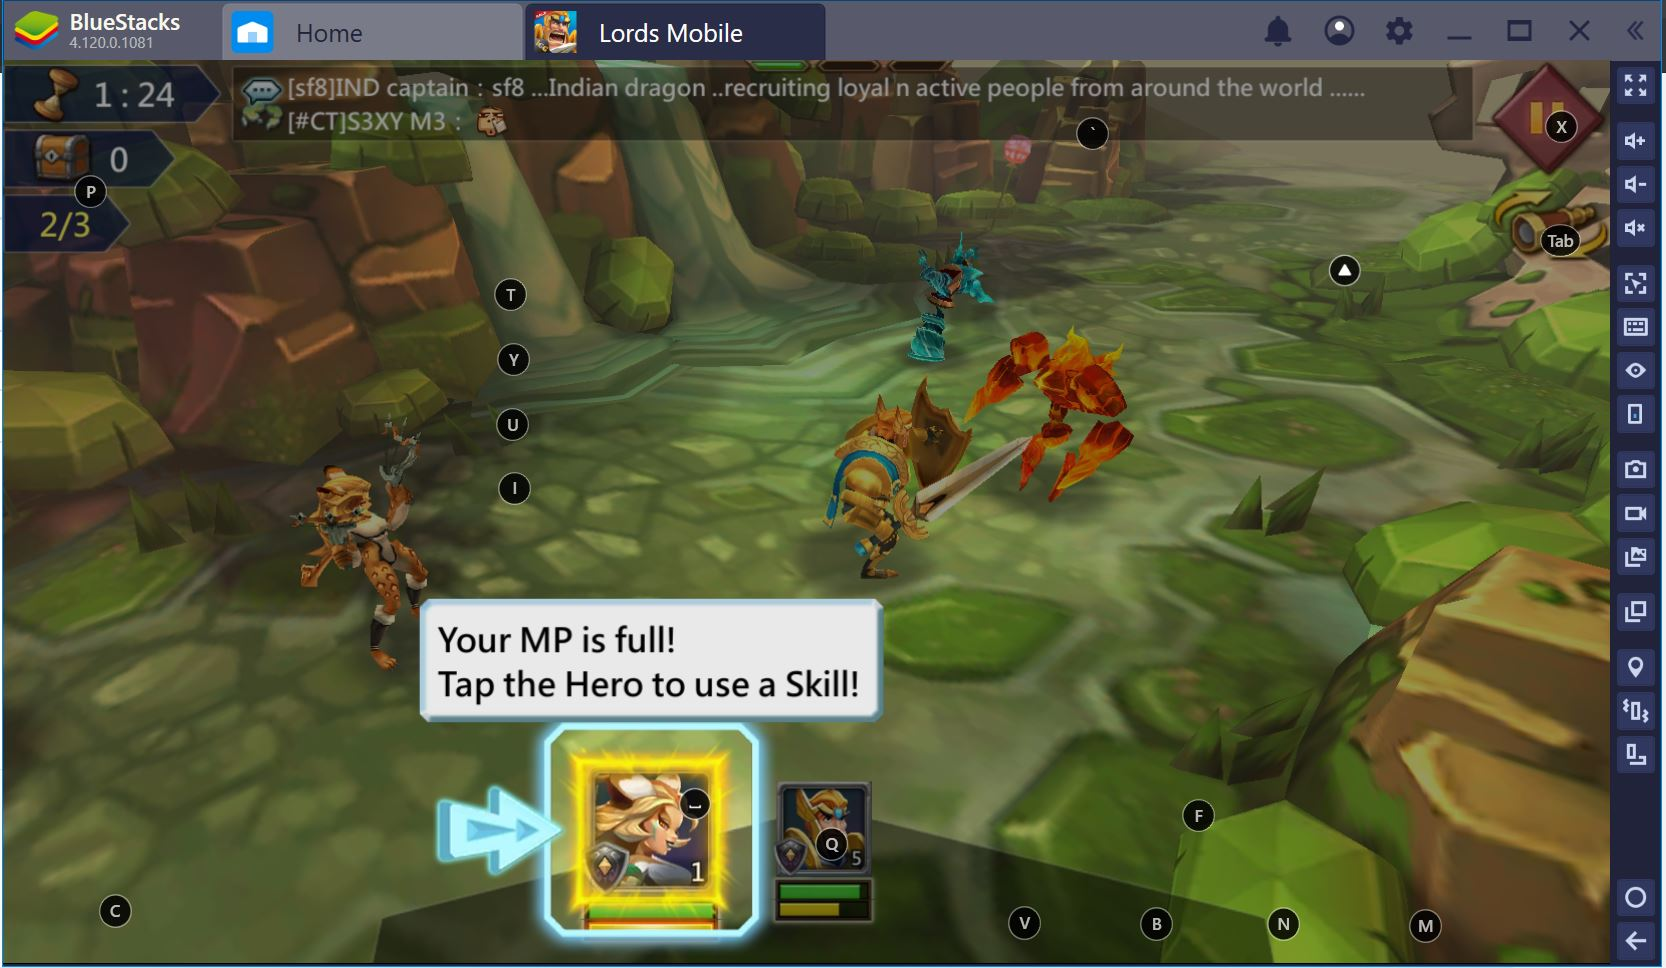 Lords Mobile Guide: Using BlueStacks to Streamline Your Gaming Experience